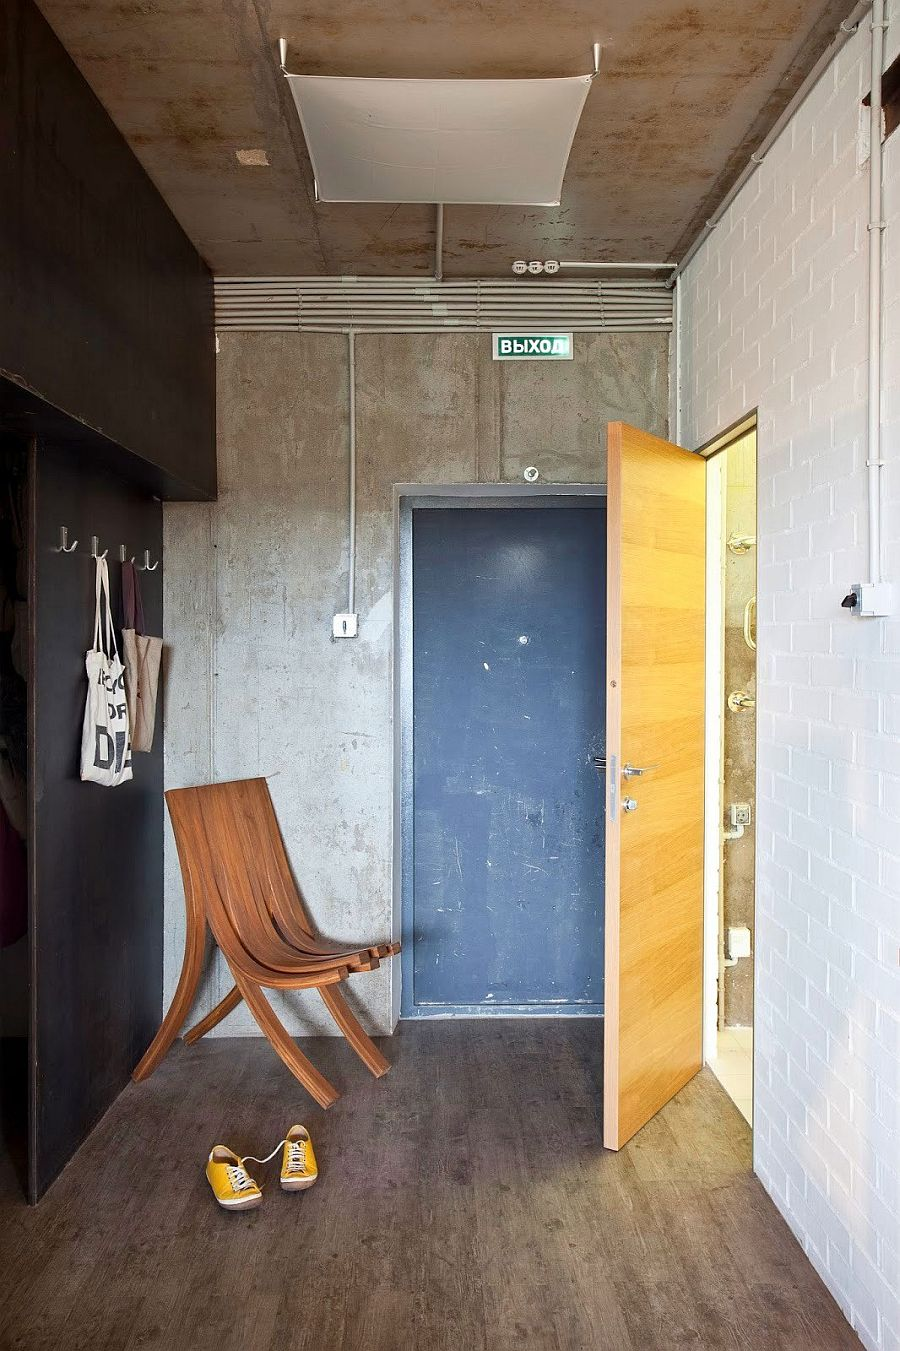 Entrance of the small Russian apartment with exposed concrete and tile walls